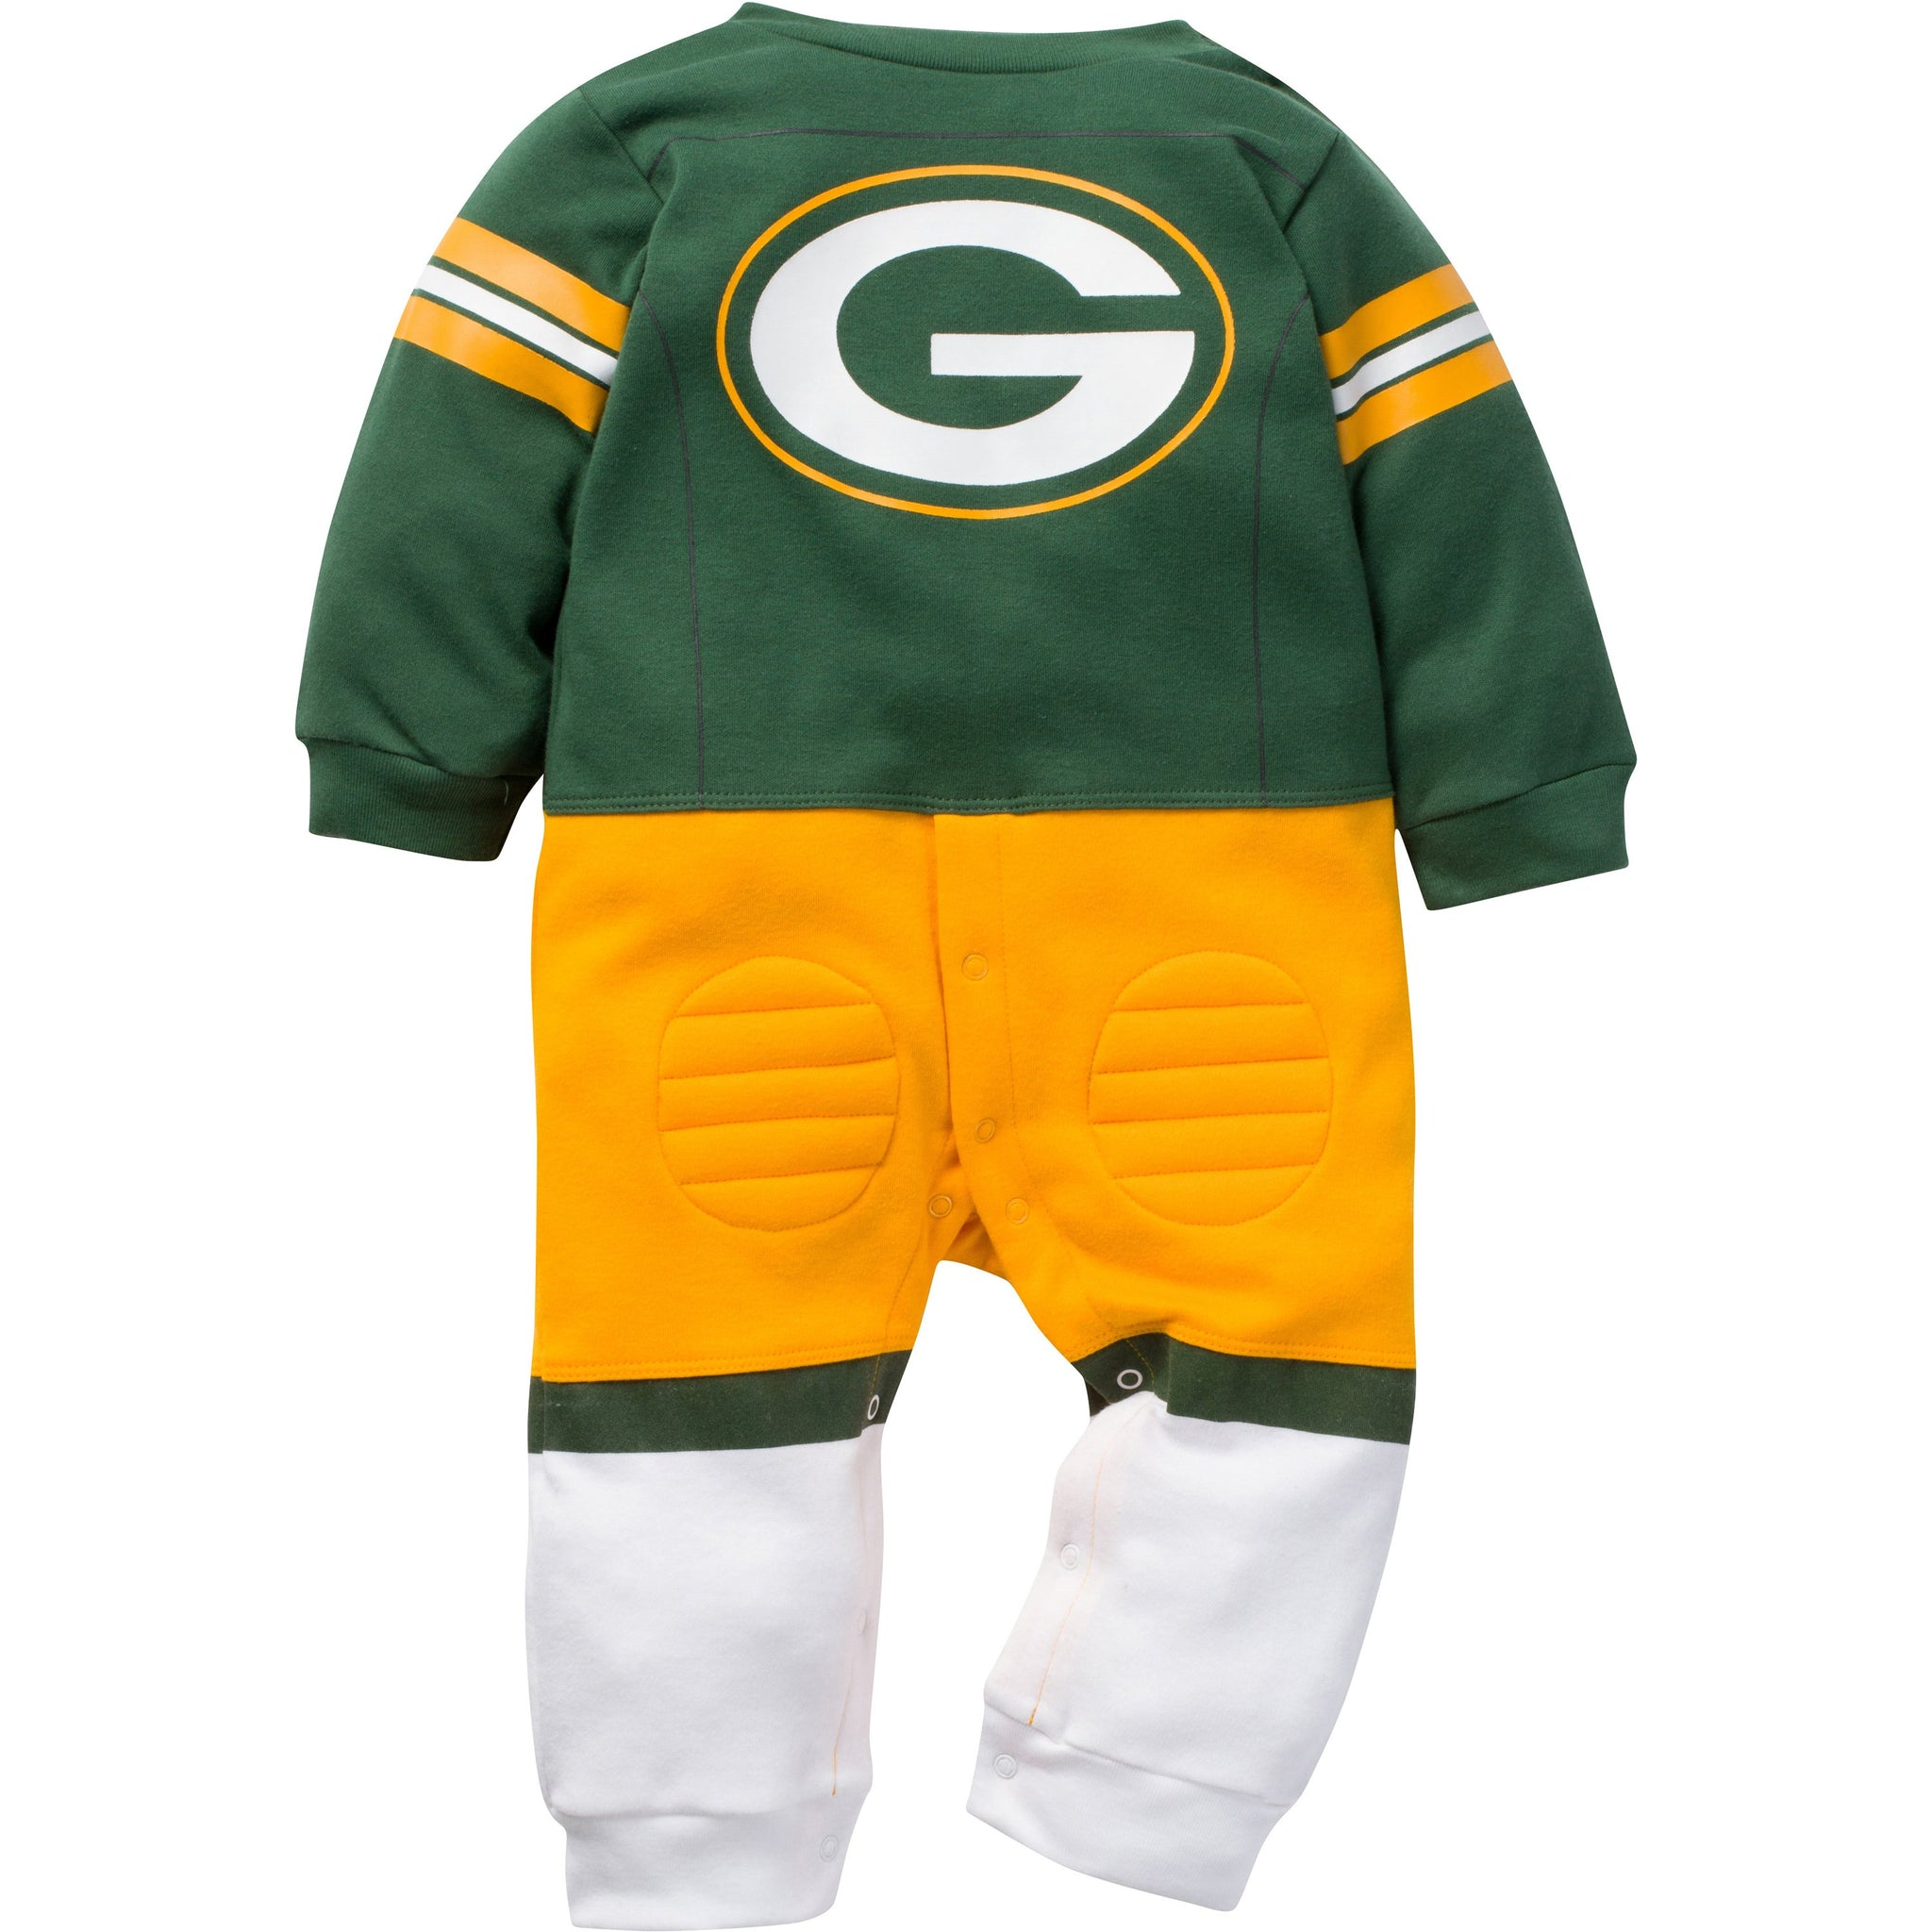 online store 56f30 7a873 Green Bay Packers Baby Clothes & Apparel - Girls & Boys ...